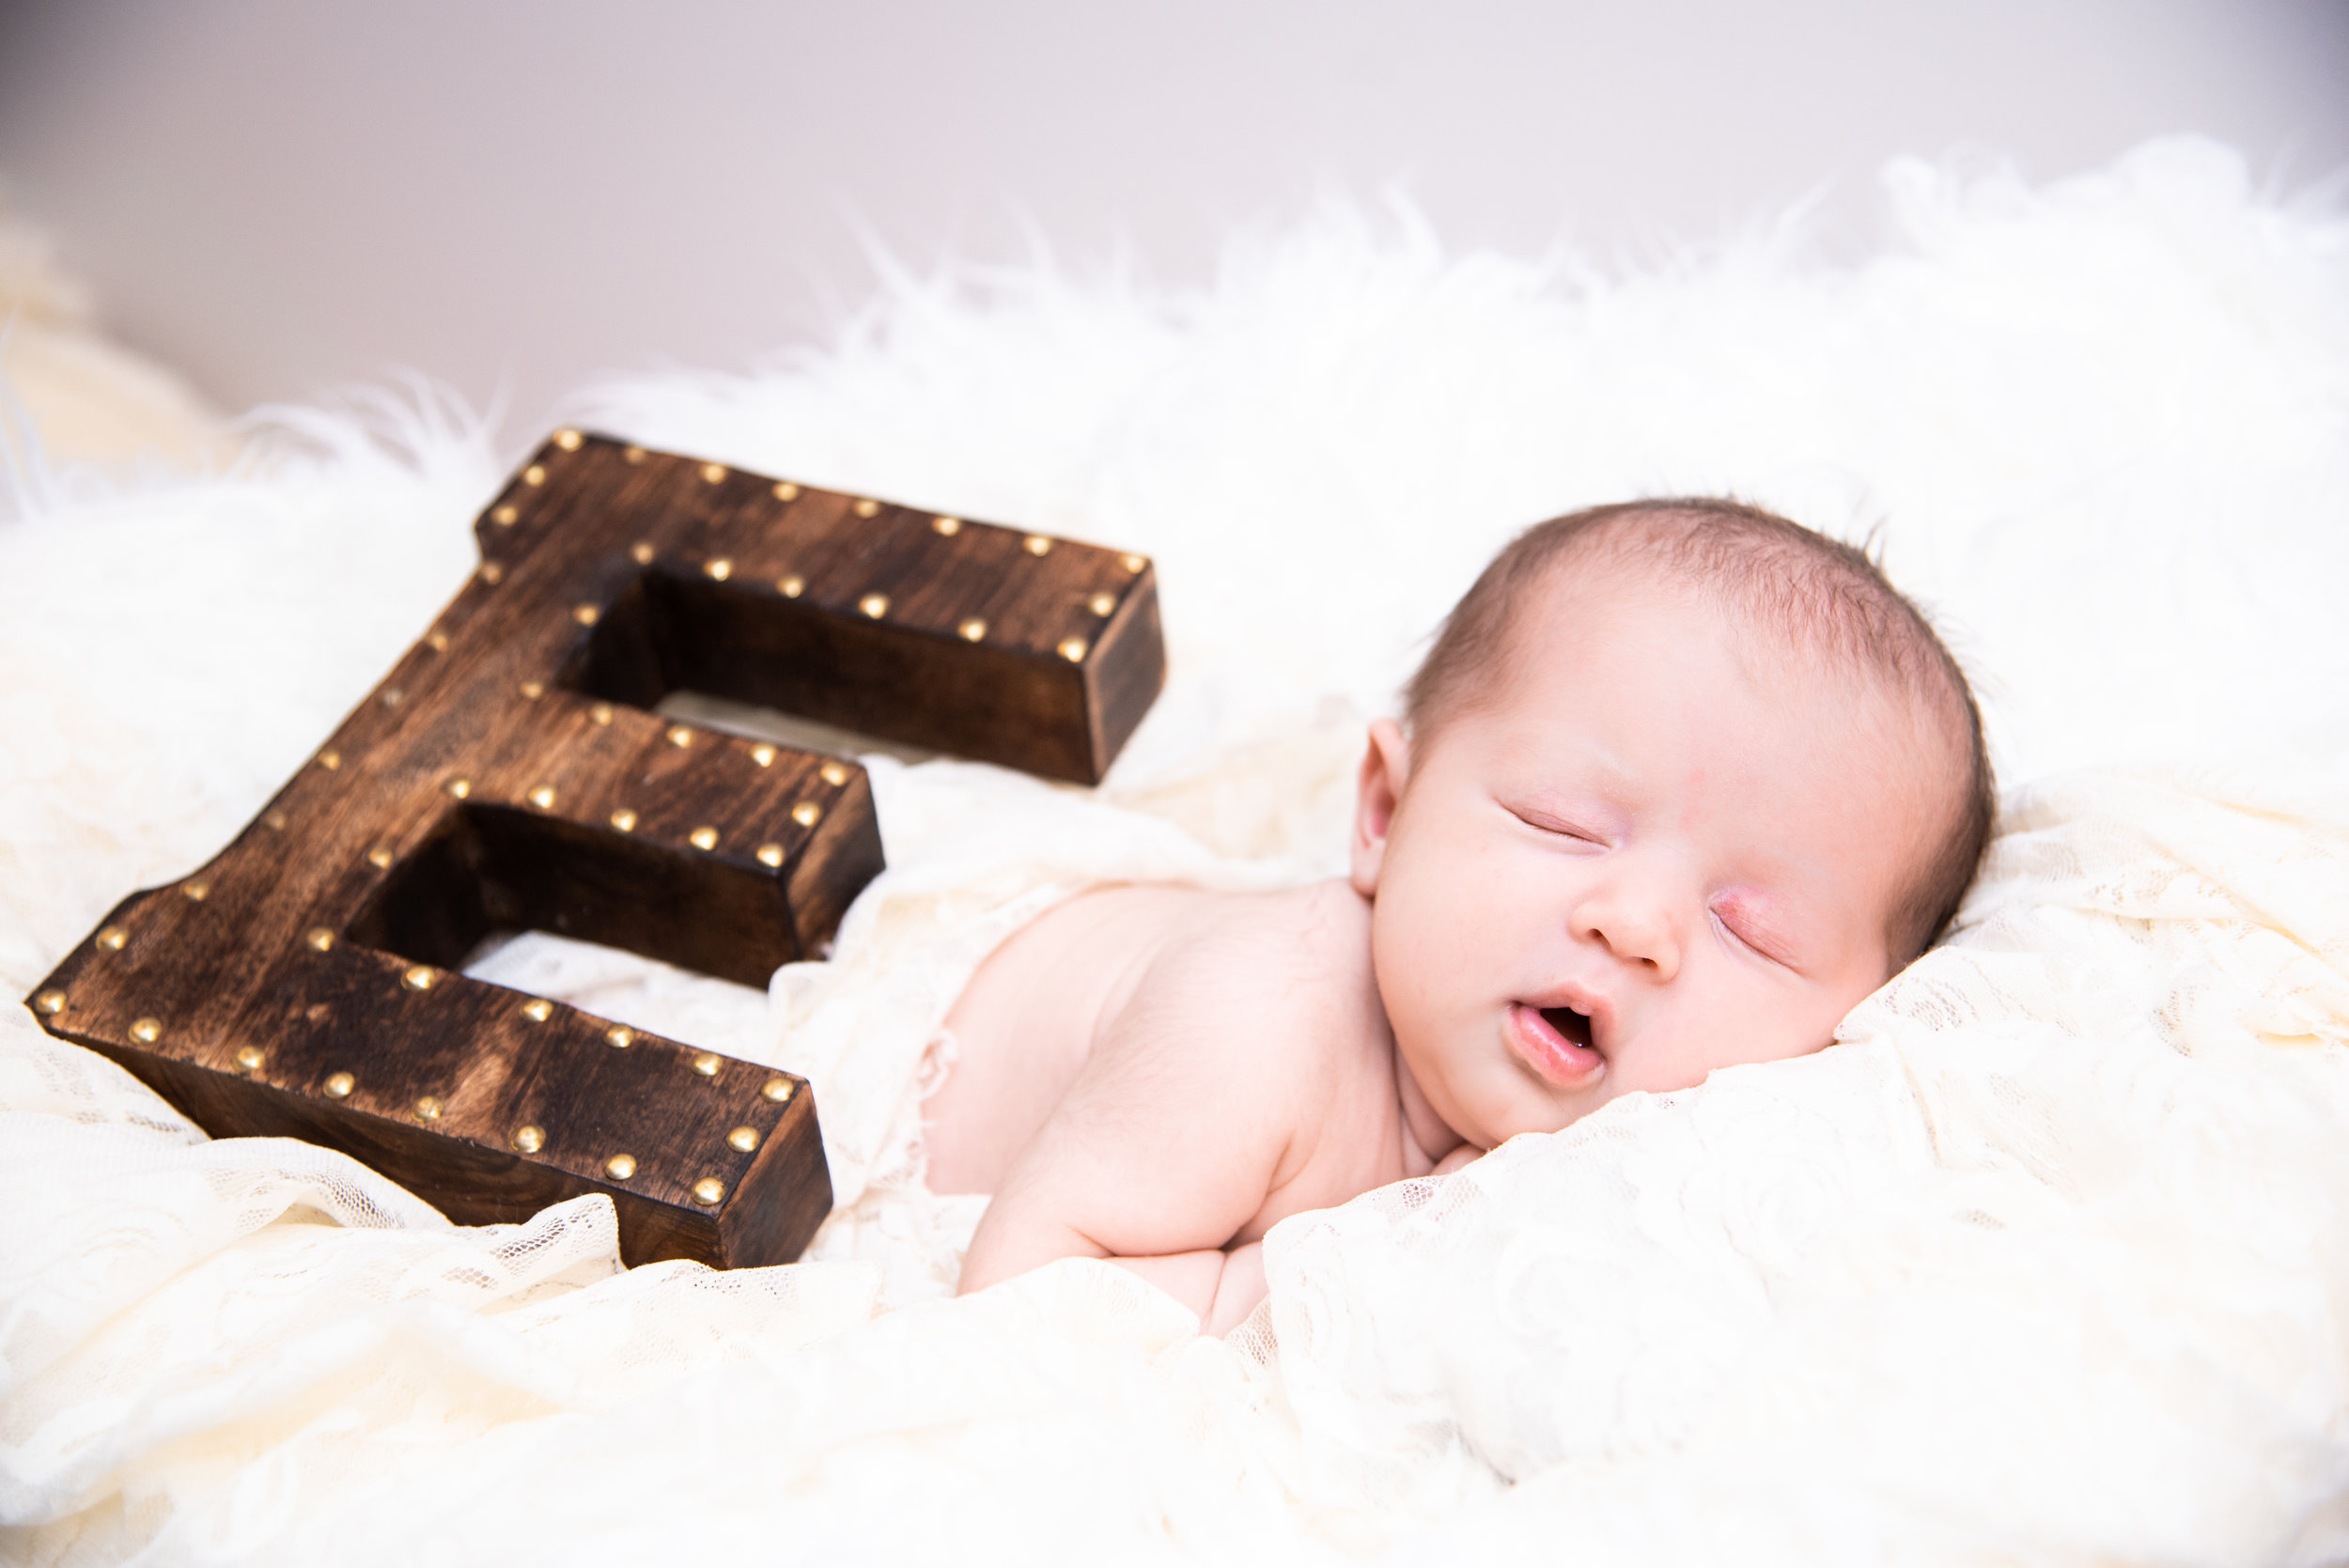 Kyla Jo Photography // Muncie, Indiana // Newborn Photos // Newborn Session // Muncie indiana newborn session // Newborn photographer muncie indiana // indiana newborn photographer // Midwest Newborn Photos